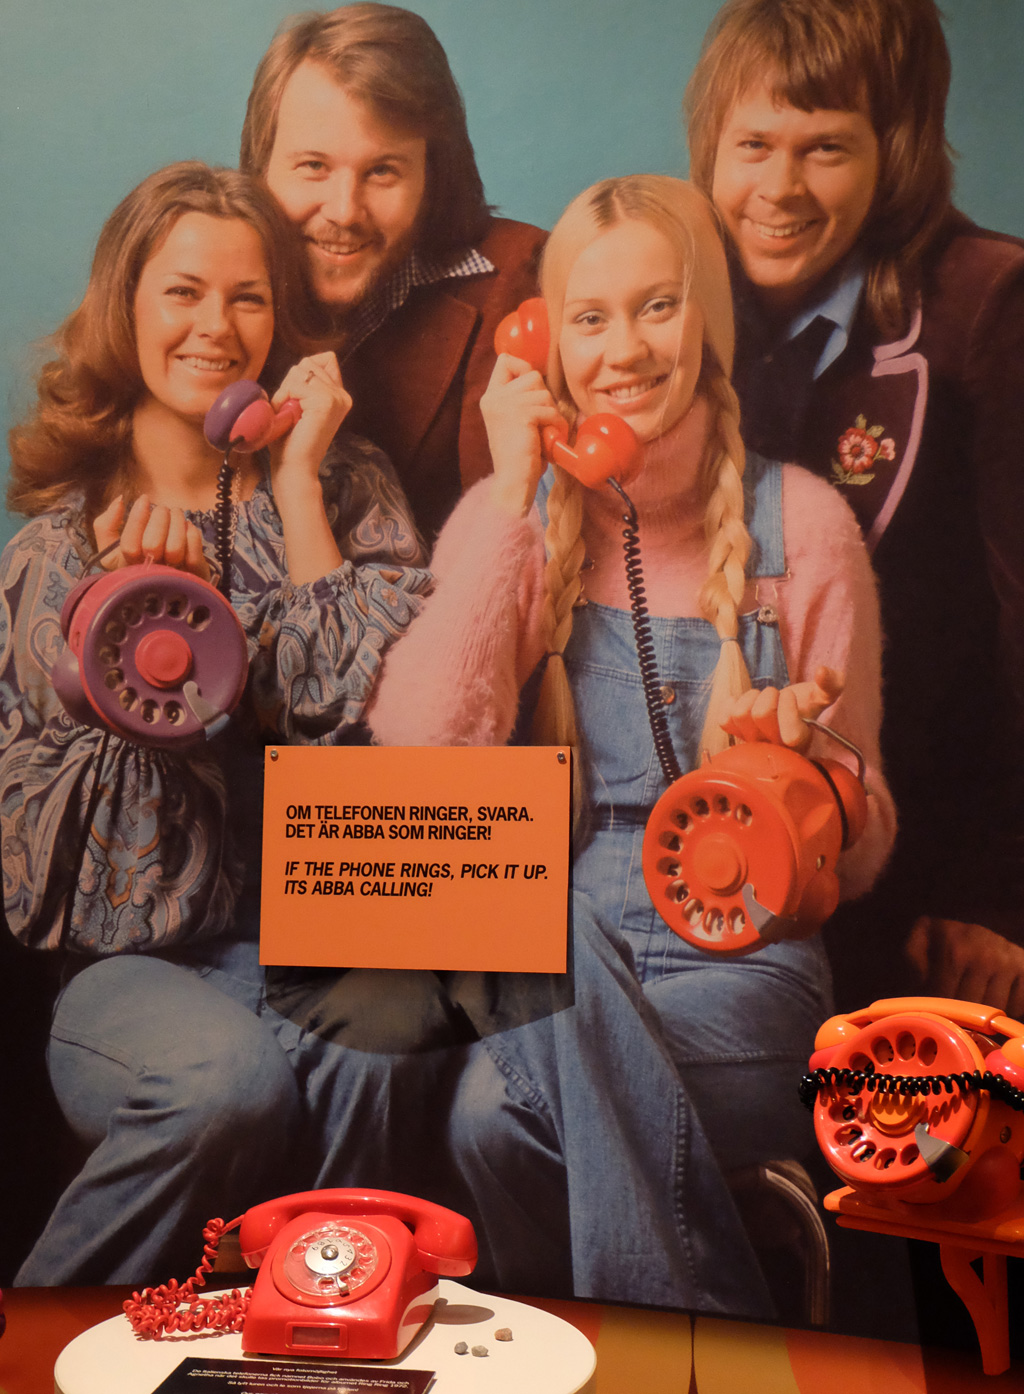 If the phone rings, pick it up. It's ABBA calling!